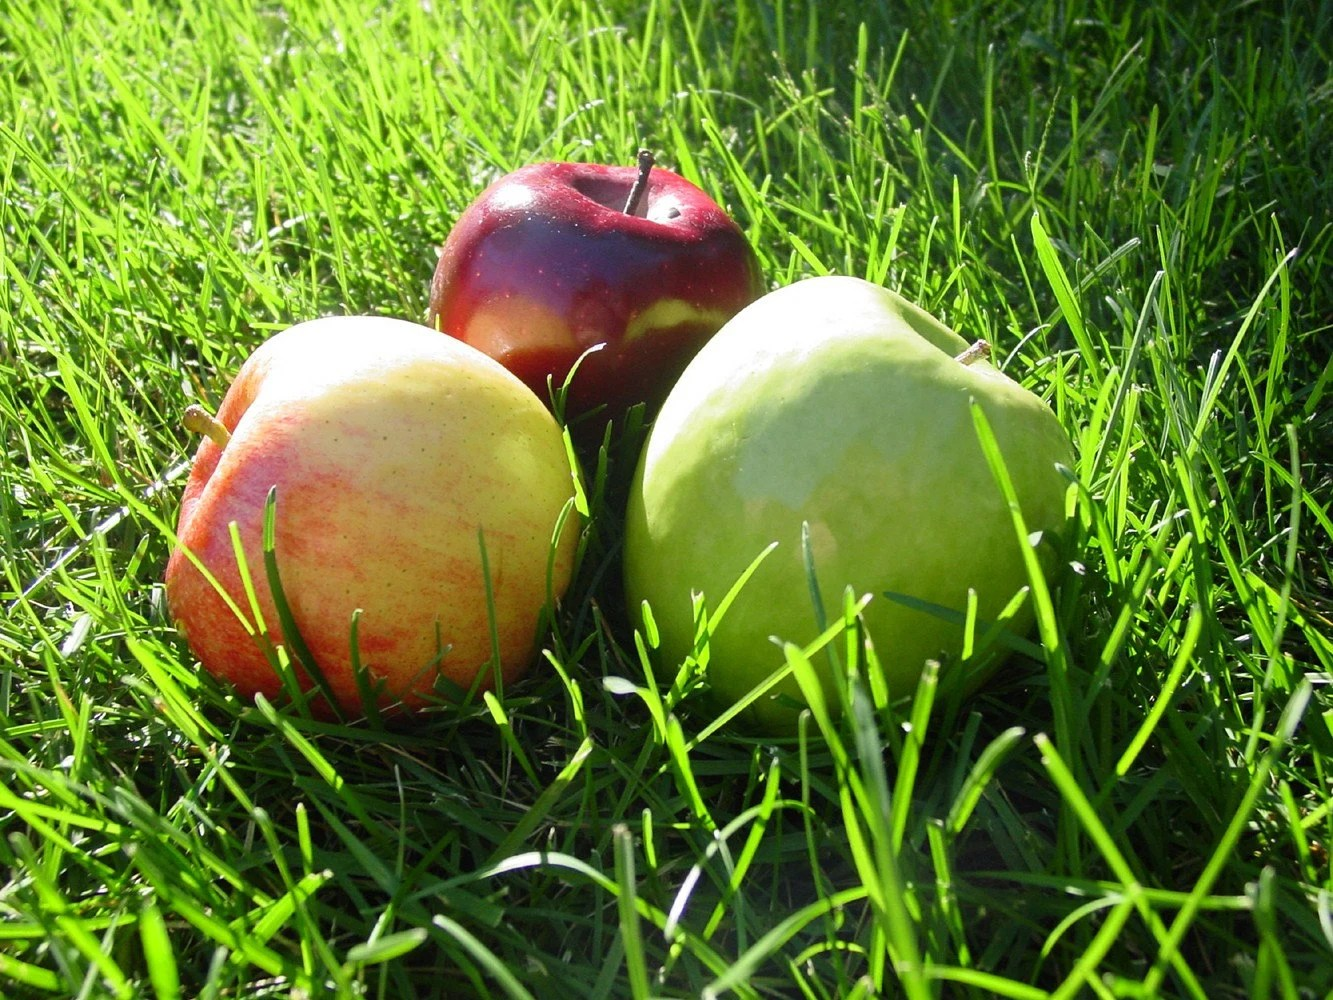 Apples 4x6 original photograph